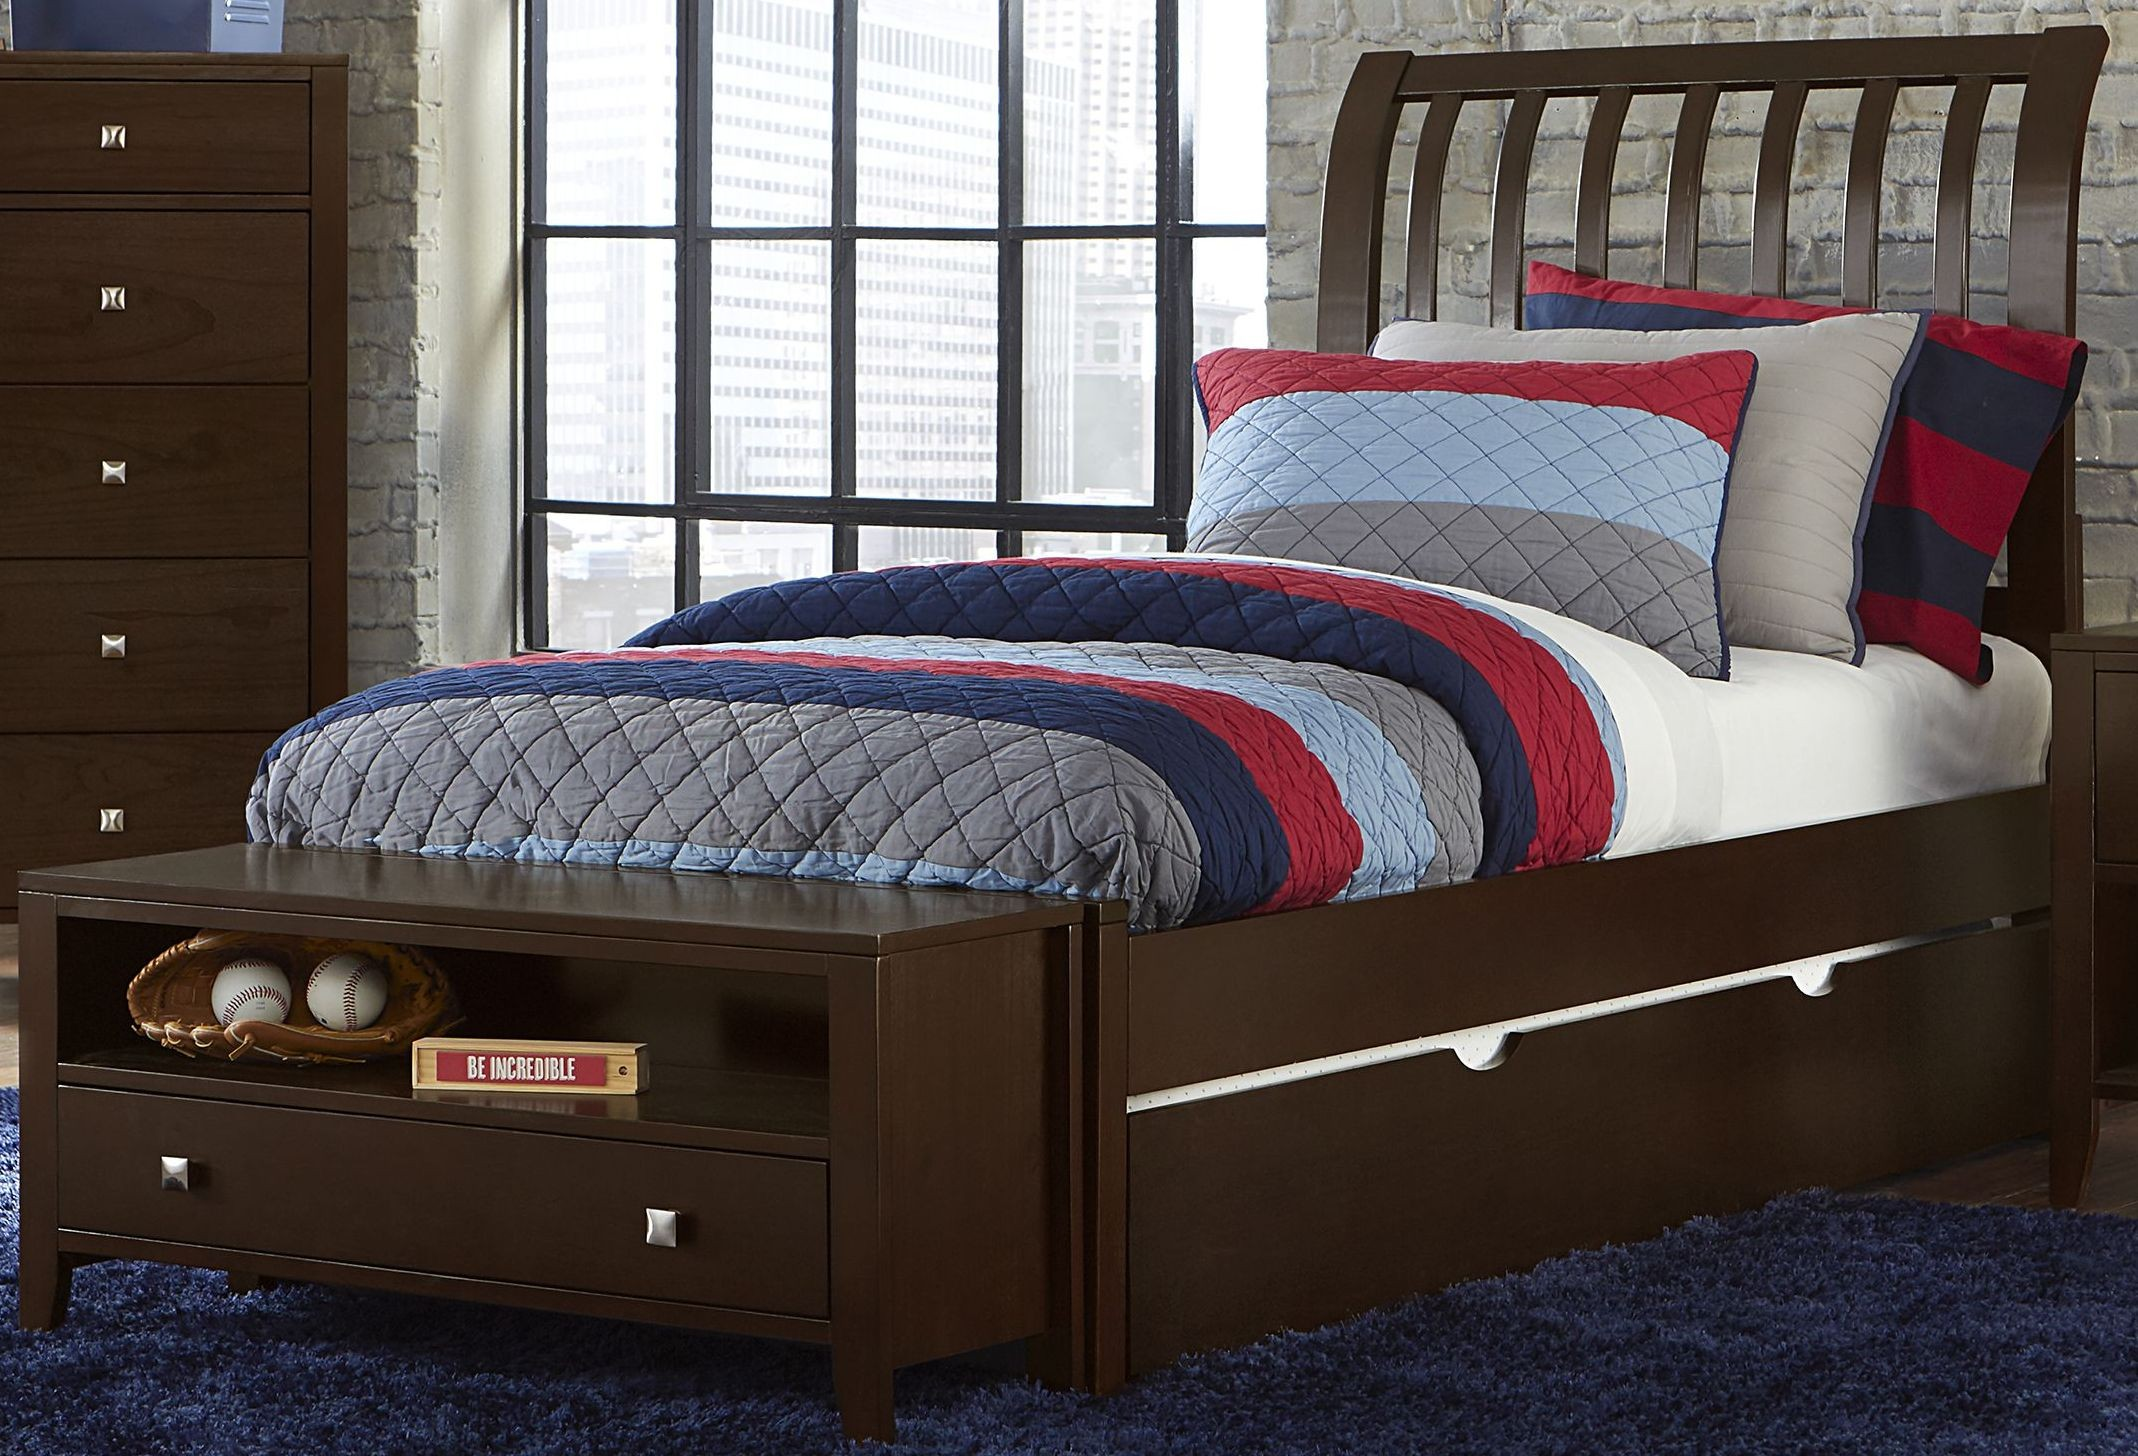 cheap sleigh beds king size sleigh bed frame full size sleig